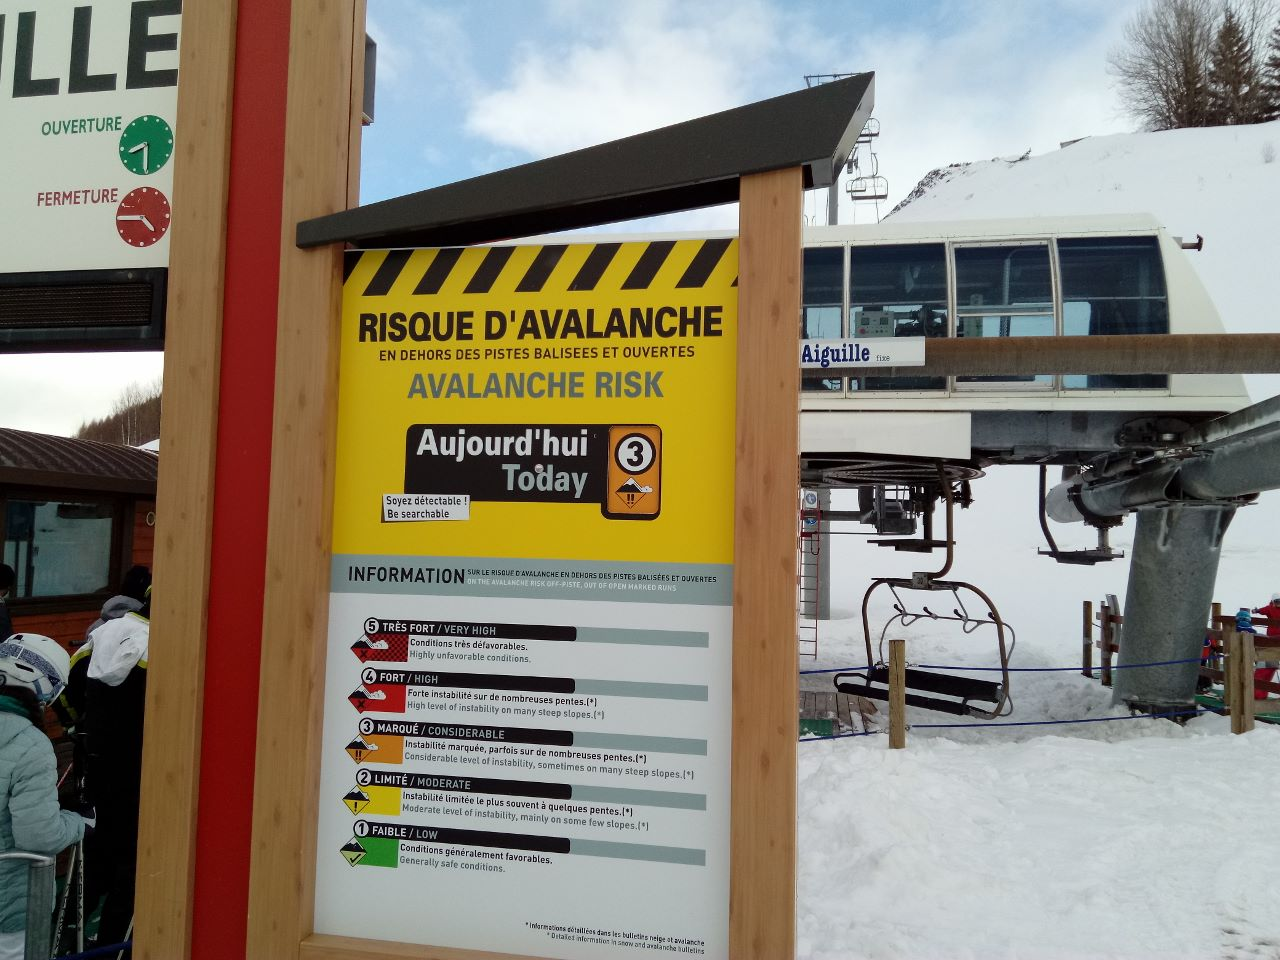 Avalanche risk 3